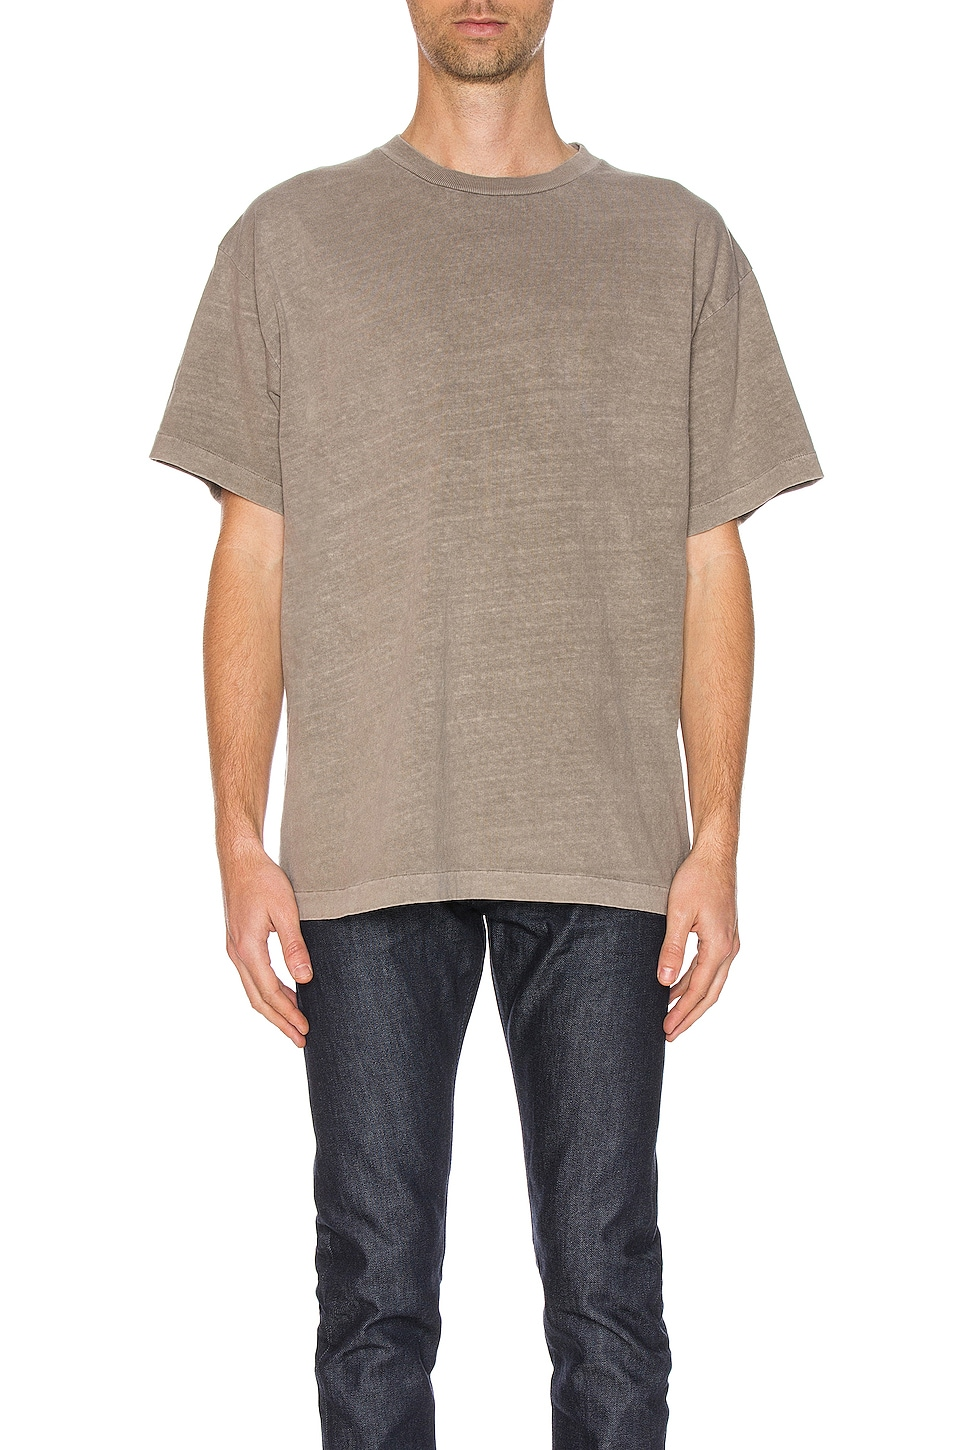 JOHN ELLIOTT University Tee in Mocha